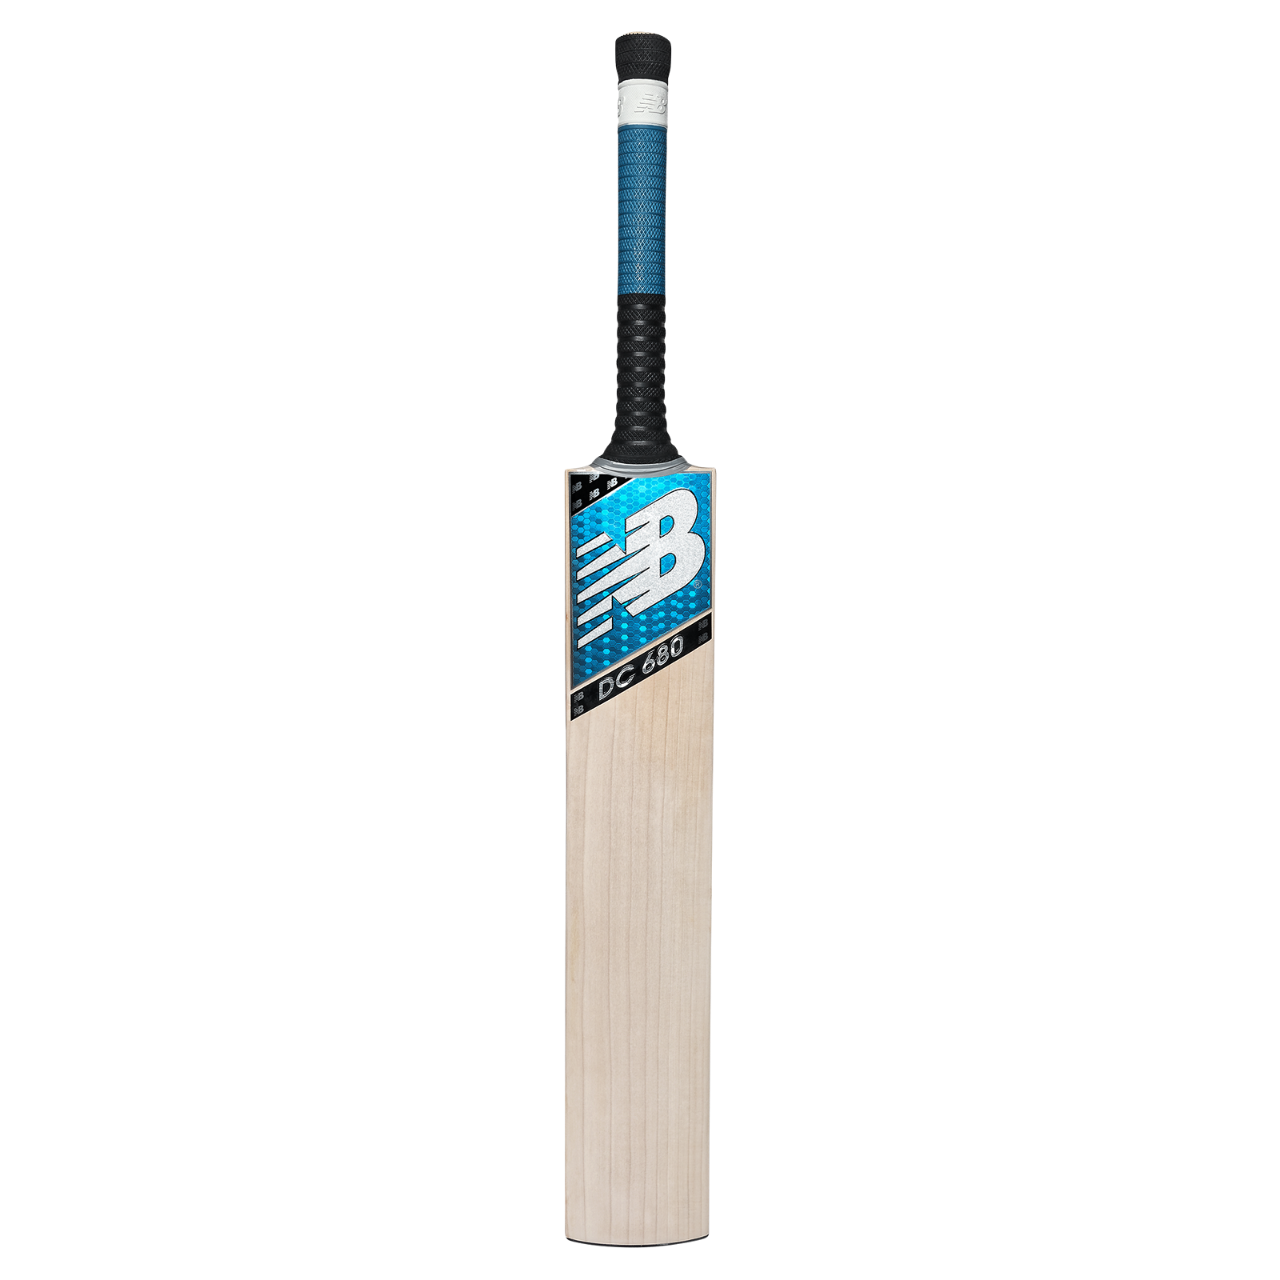 2021 New Balance DC 680 Cricket Bat